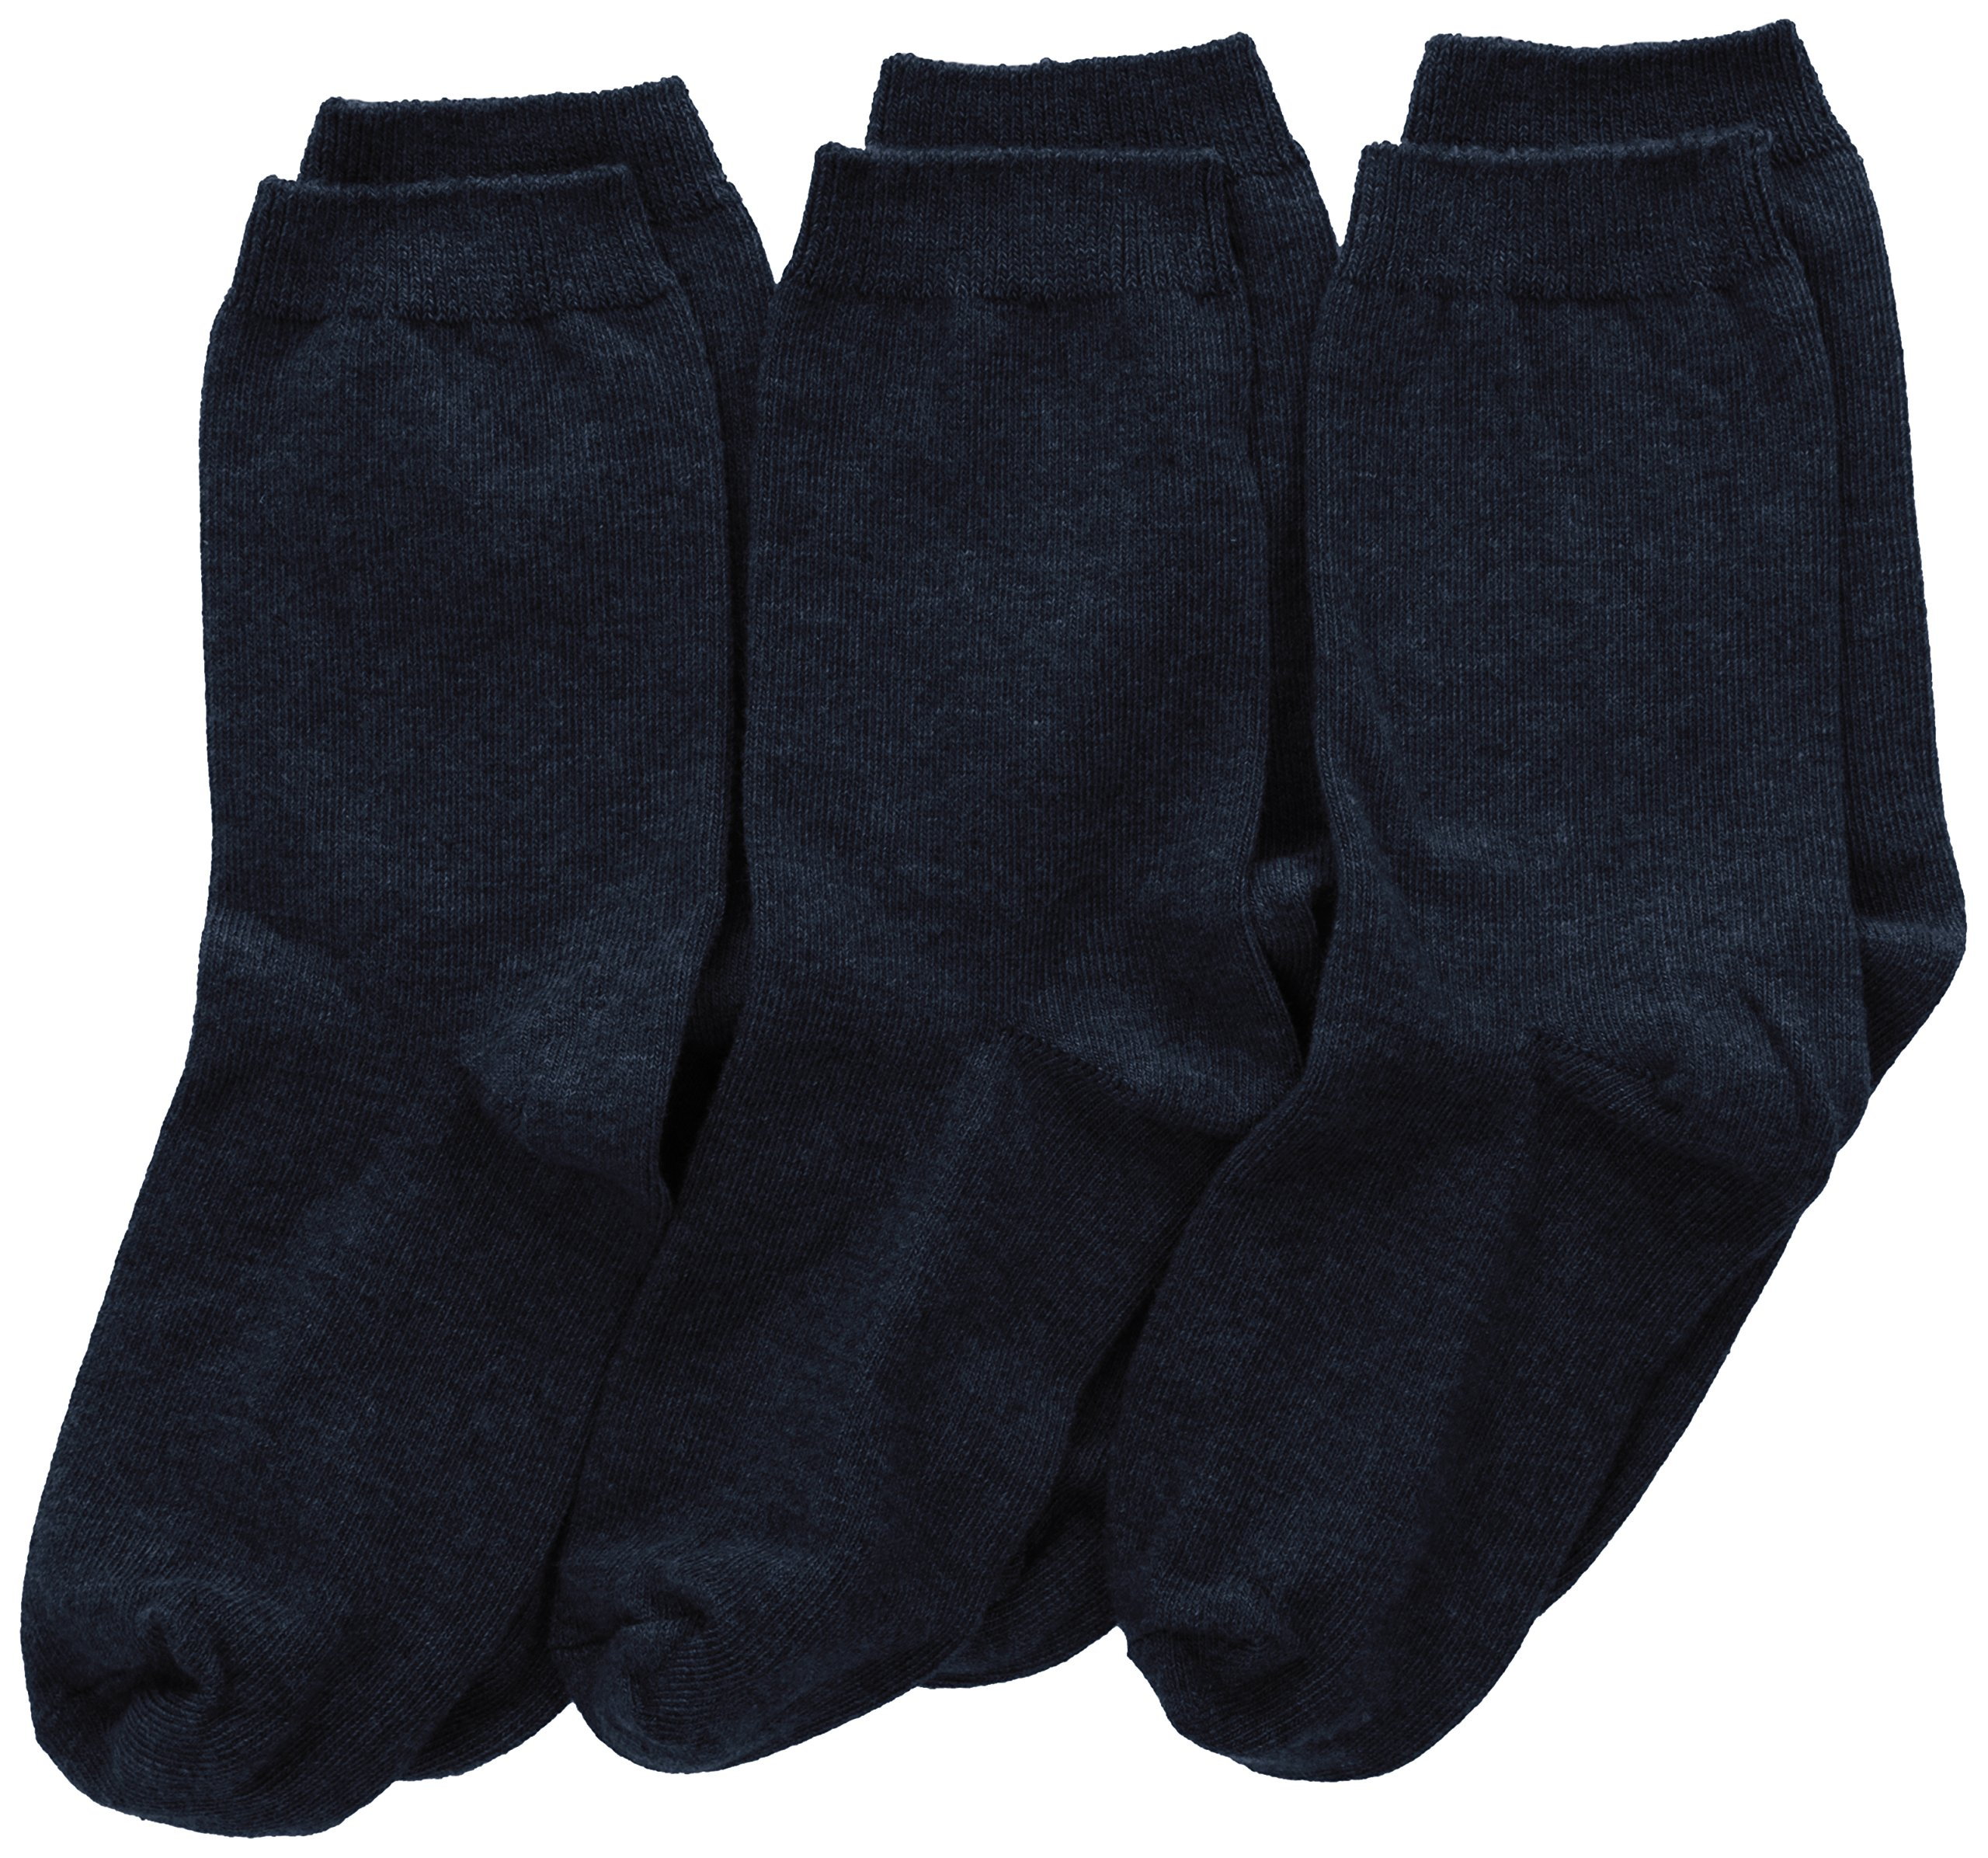 Jefferies Socks Big Boys' School Uniform Cotton Crew (Pack of 3), Navy, Small